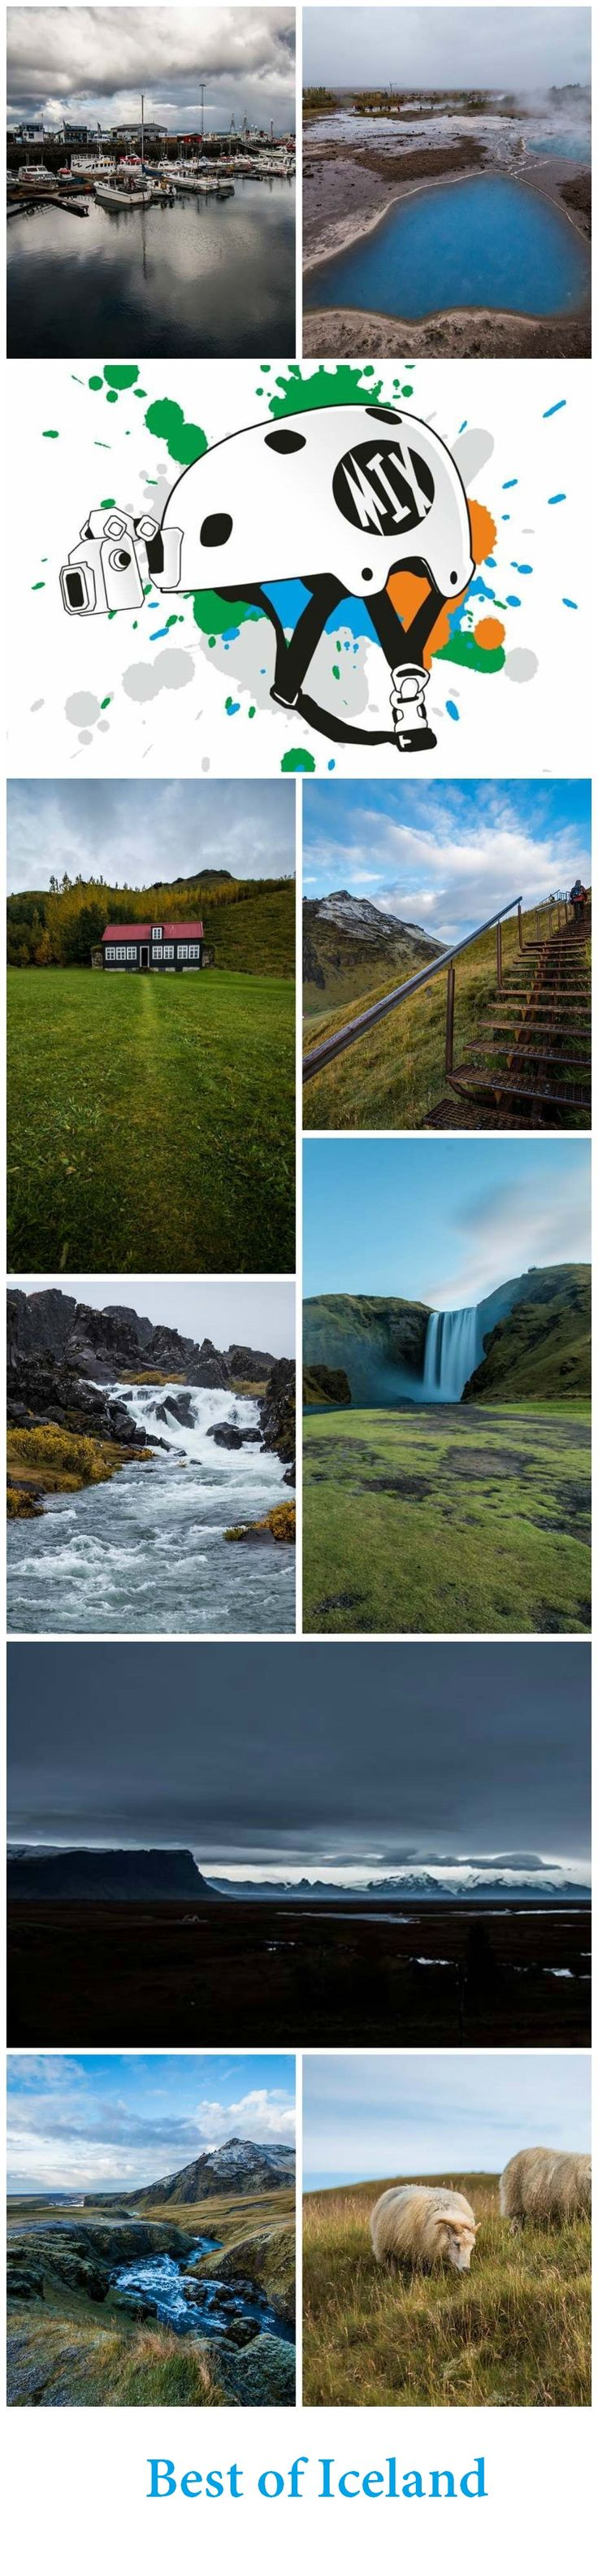 best of Iceland photos by Baráth Mix Levente https://www.facebook.com/mixtremevideos/?fref=photo